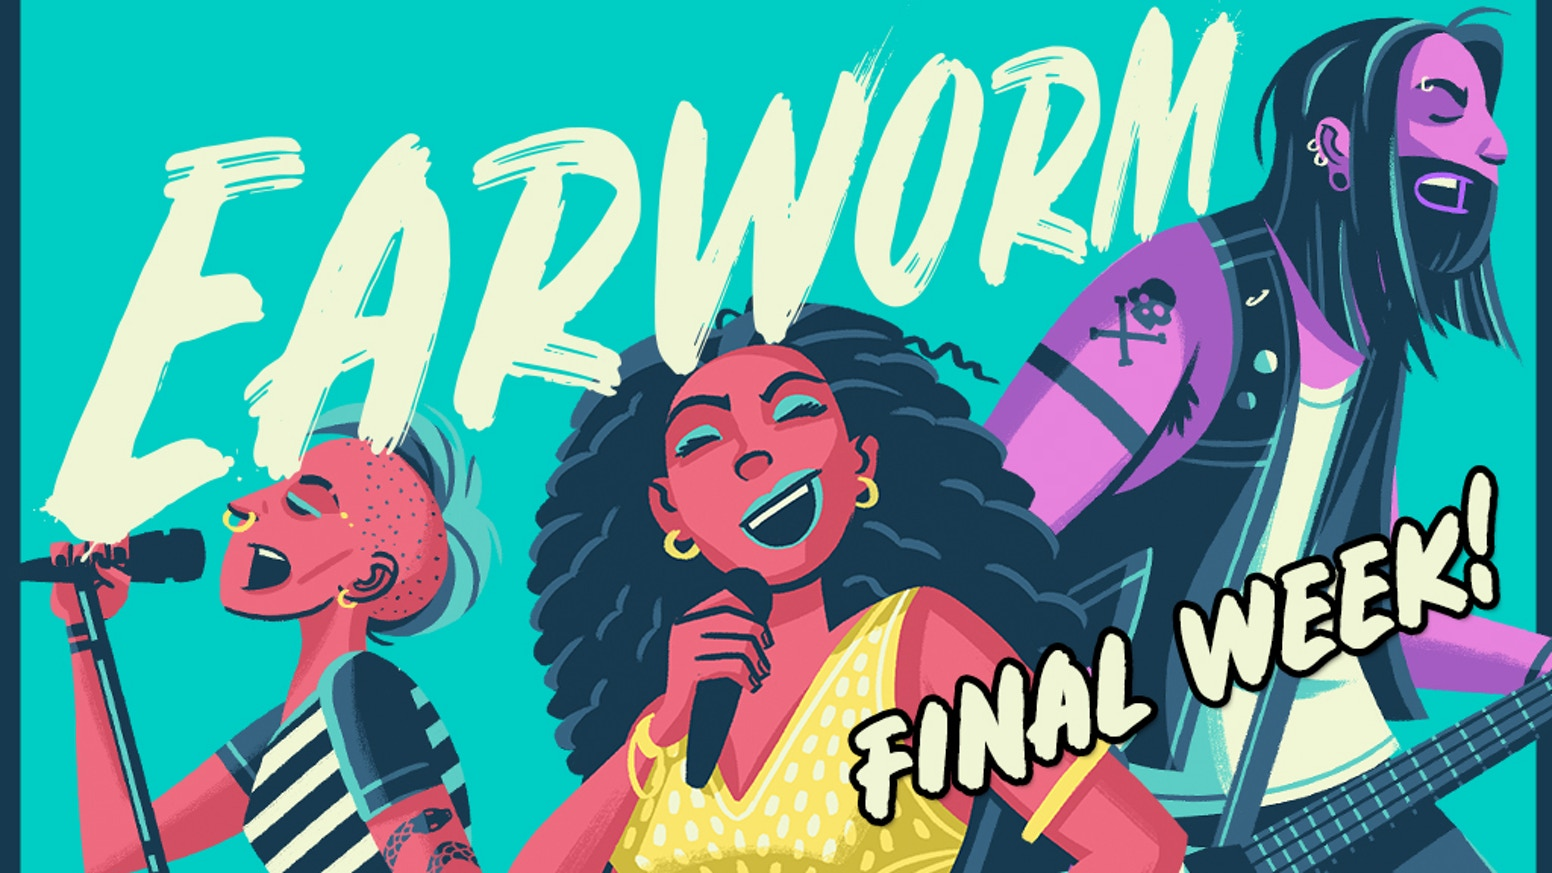 Earworm is the game that has YOU recreating your favorite songs without the lyrics! Perfect for parties, with family, and friends!